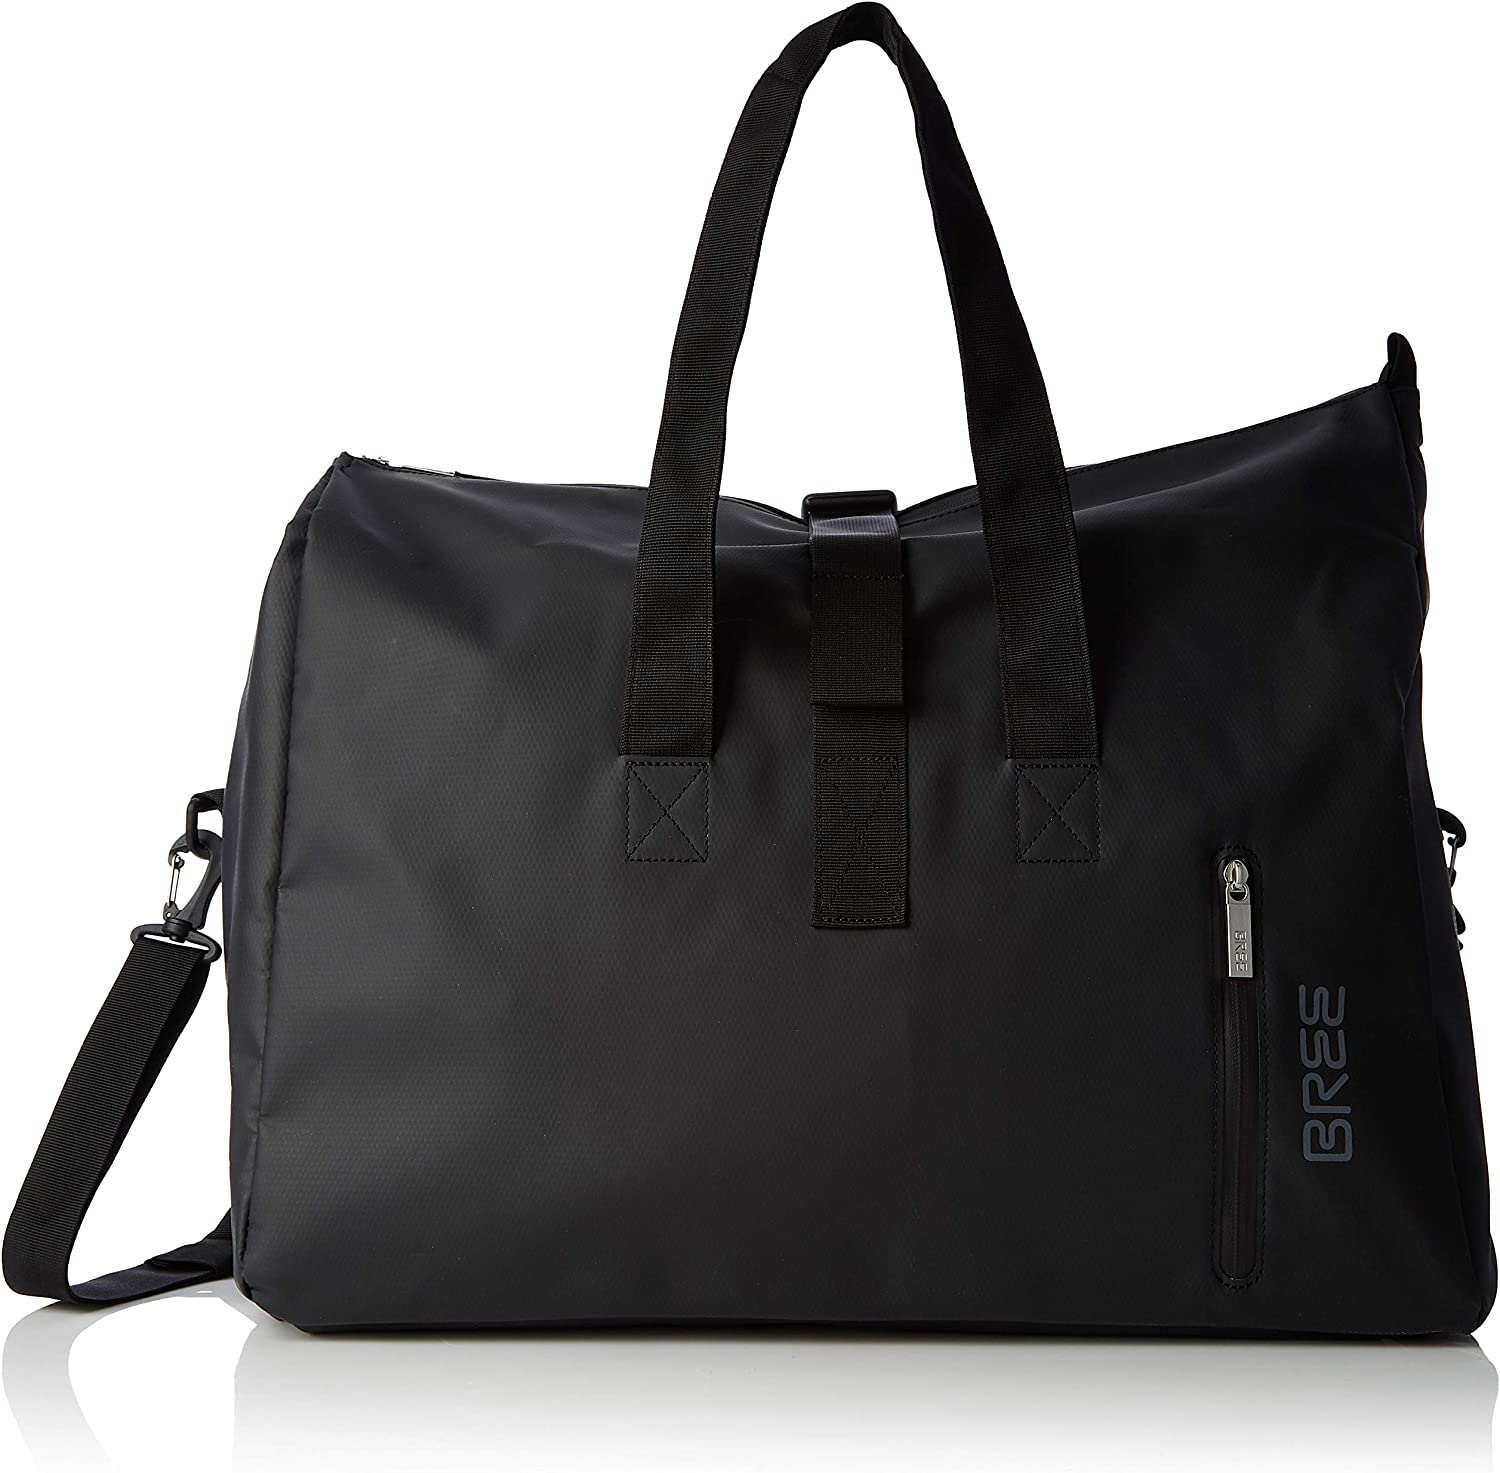 BREE Collection Punch 723, Black, Weekender S, Unisex Adults' TopHandle Bag, 25x44x50 cm (B x H T)